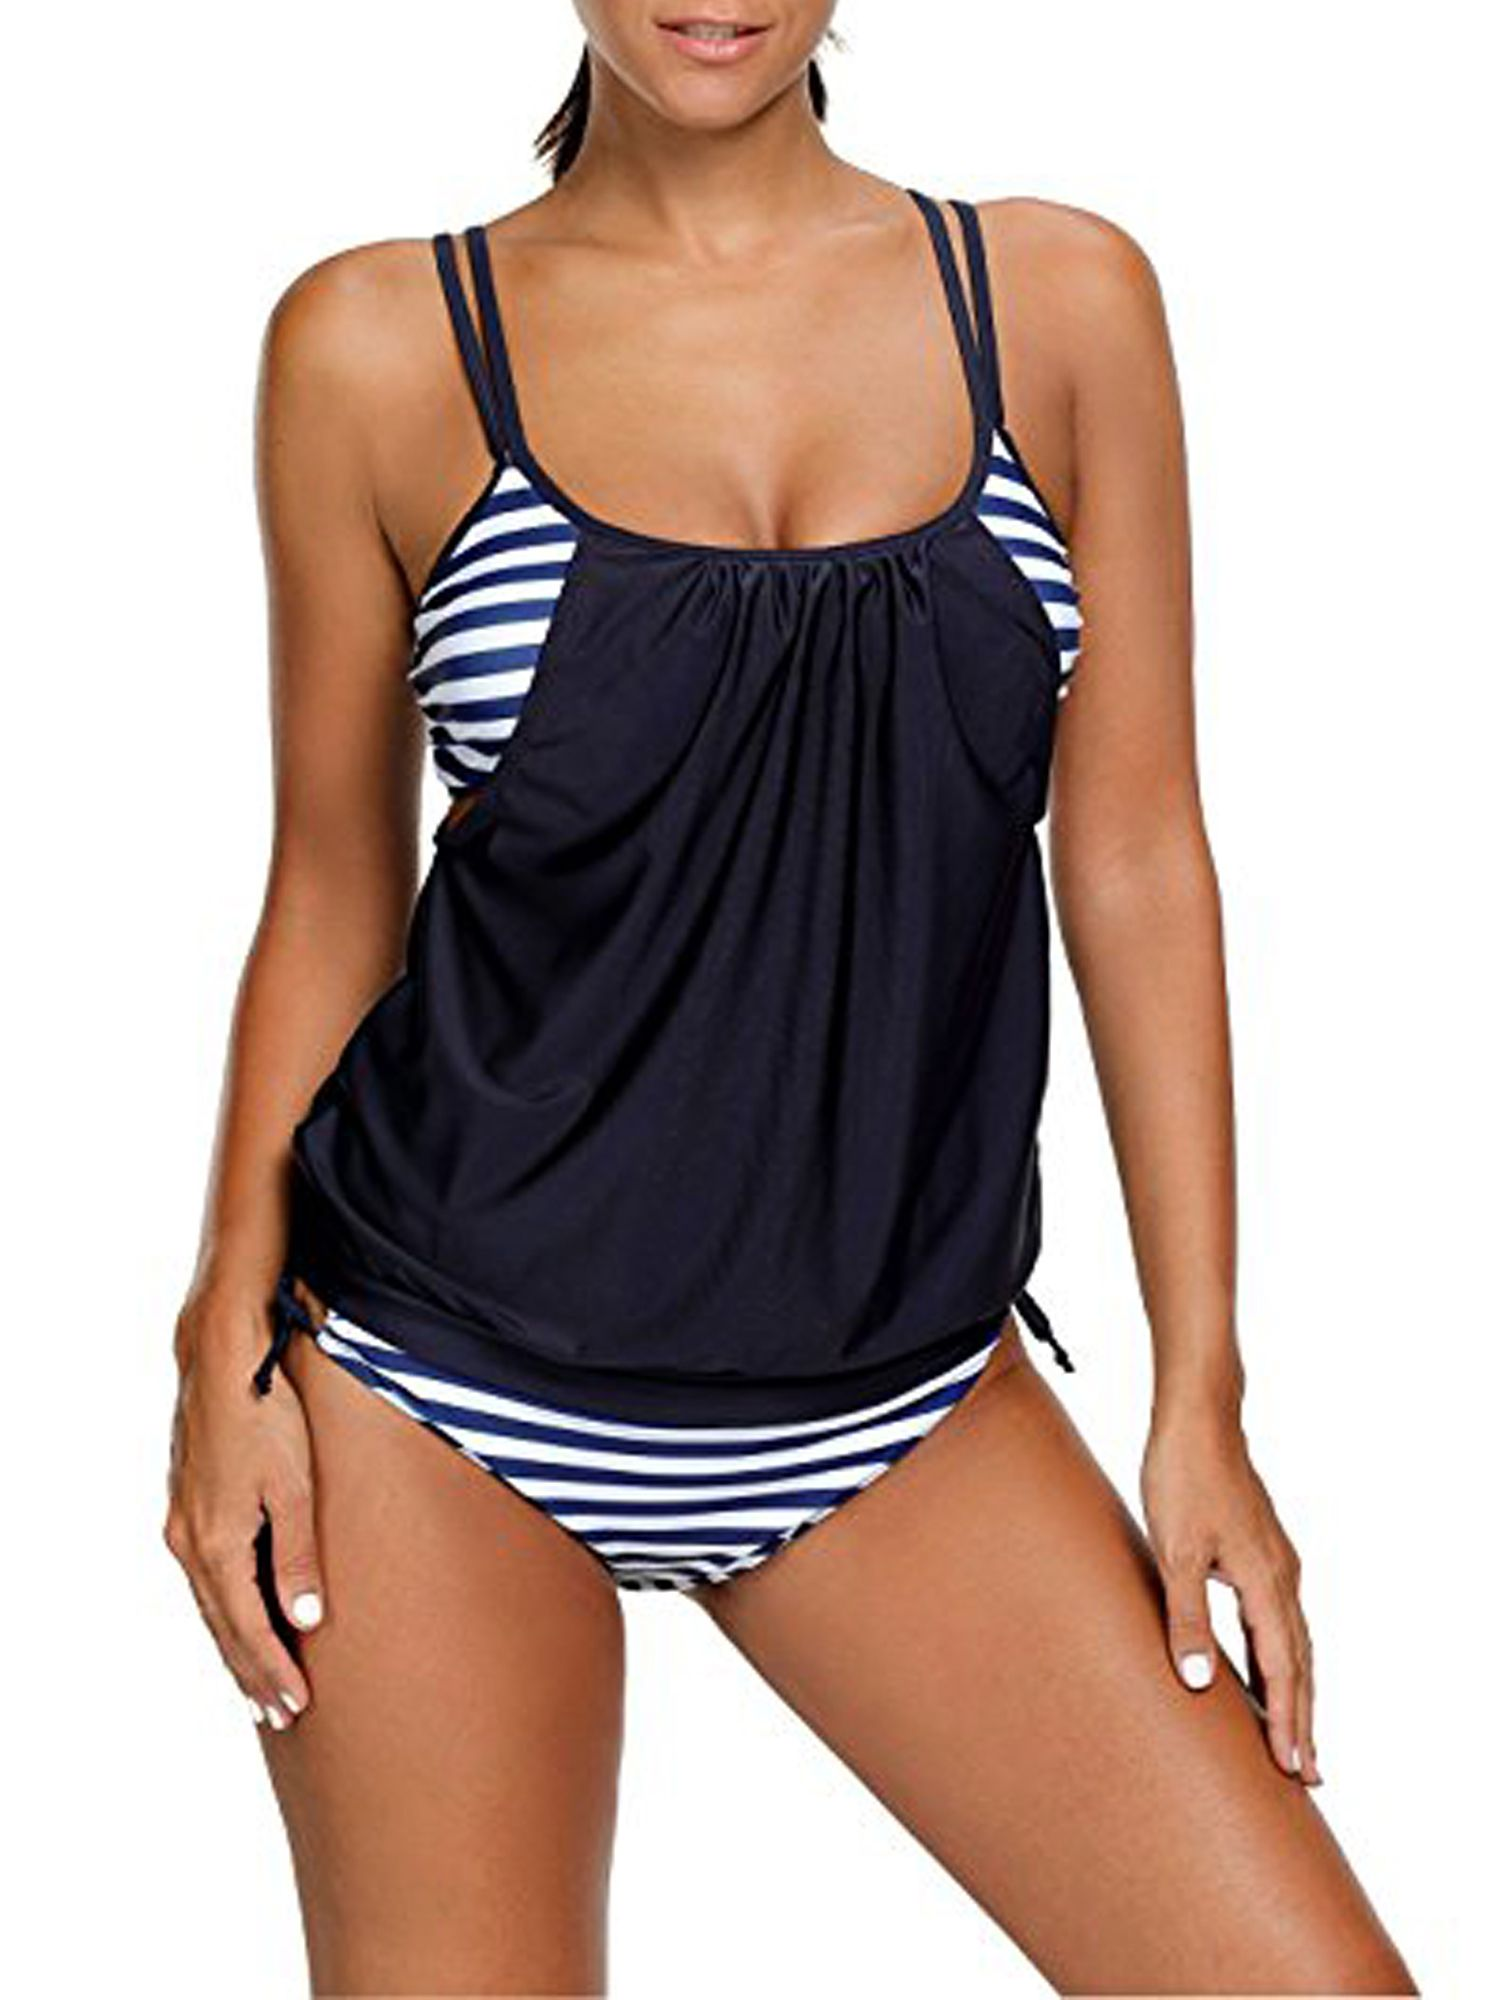 9ec3ee70149 SAYFUT Juniors' Push Up Swimwear Tankini Stripes Lined Up Double Up Two  Piece Swimsuit Set Bathing Suit Black/Dark Blue/Red/Light Blue#Lined, # Stripes, ...